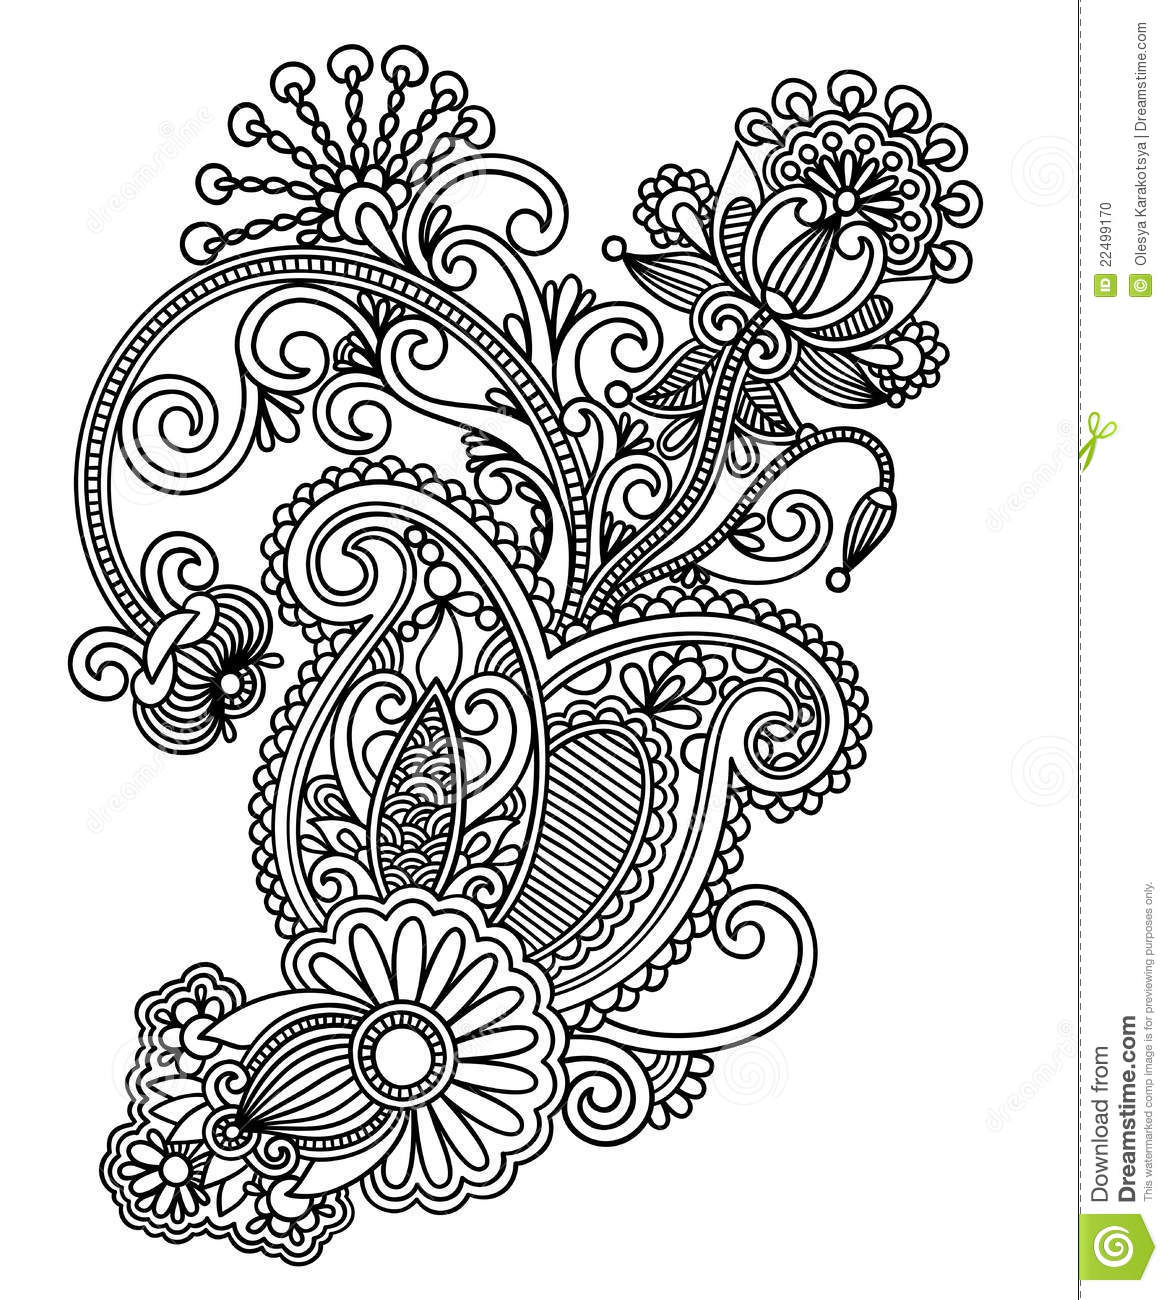 A Line Design : Line art ornate flower design stock vector illustration